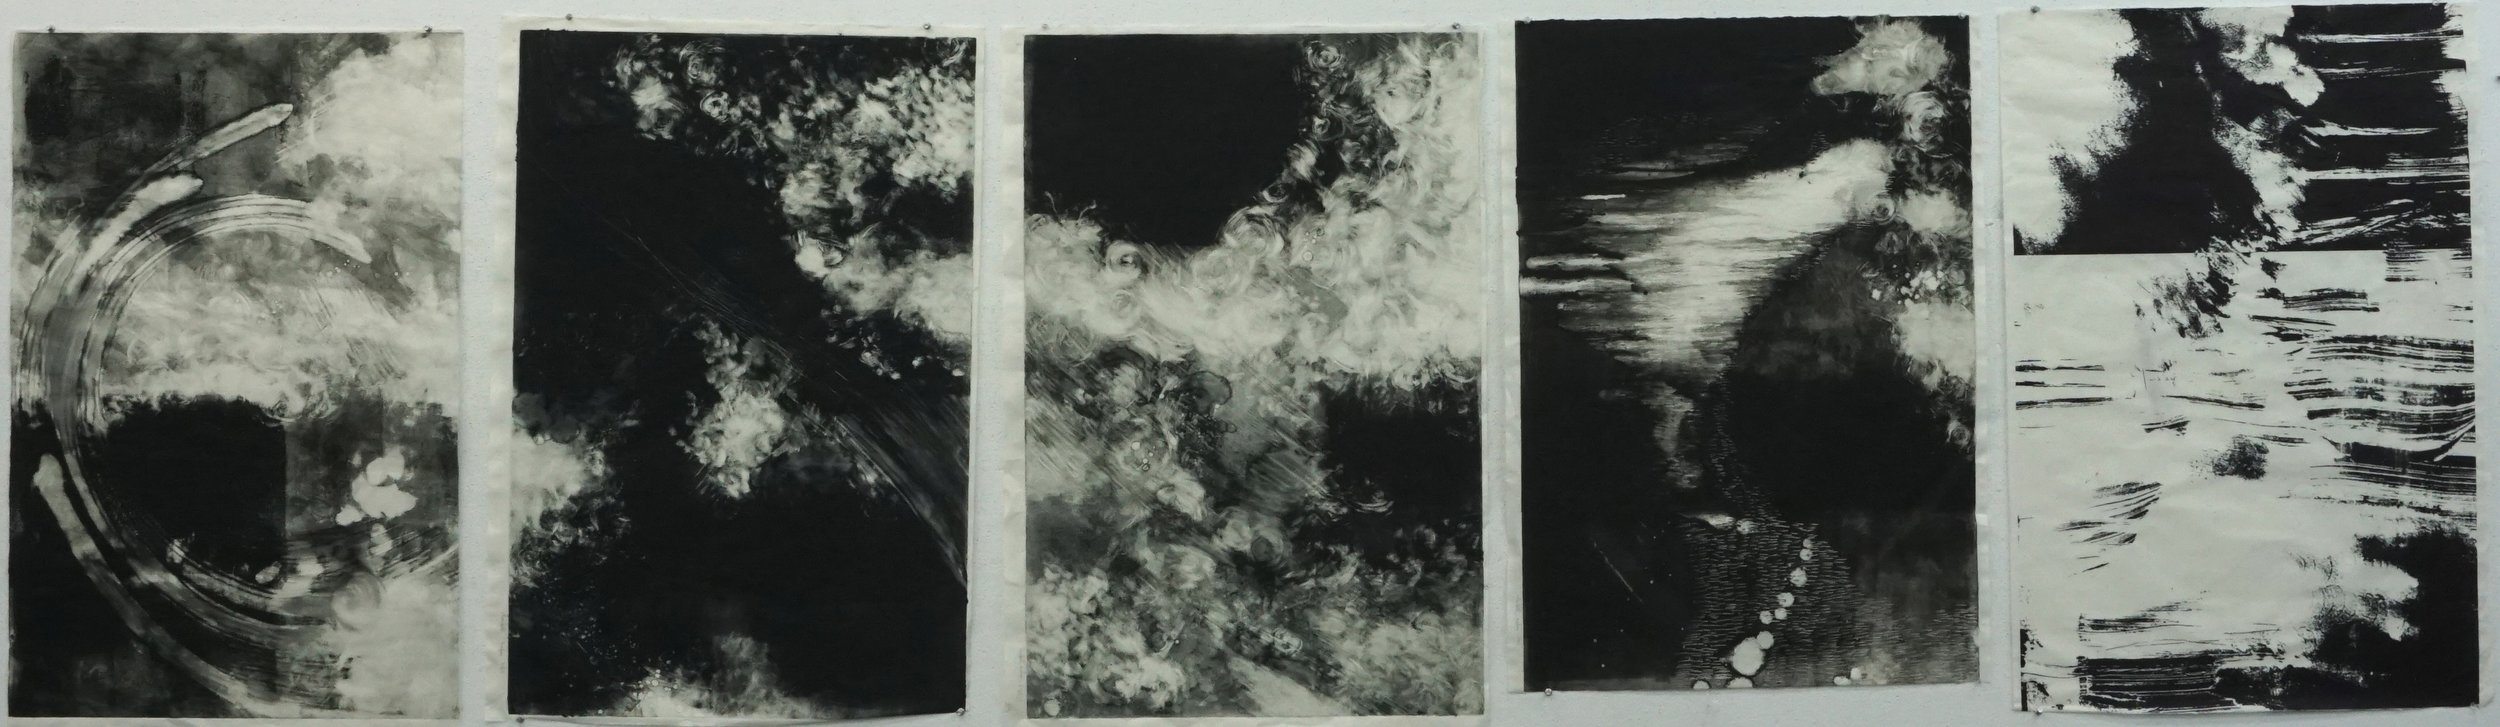 Elizabeth Seibert  Monotype (series of 5)  Monotype 1